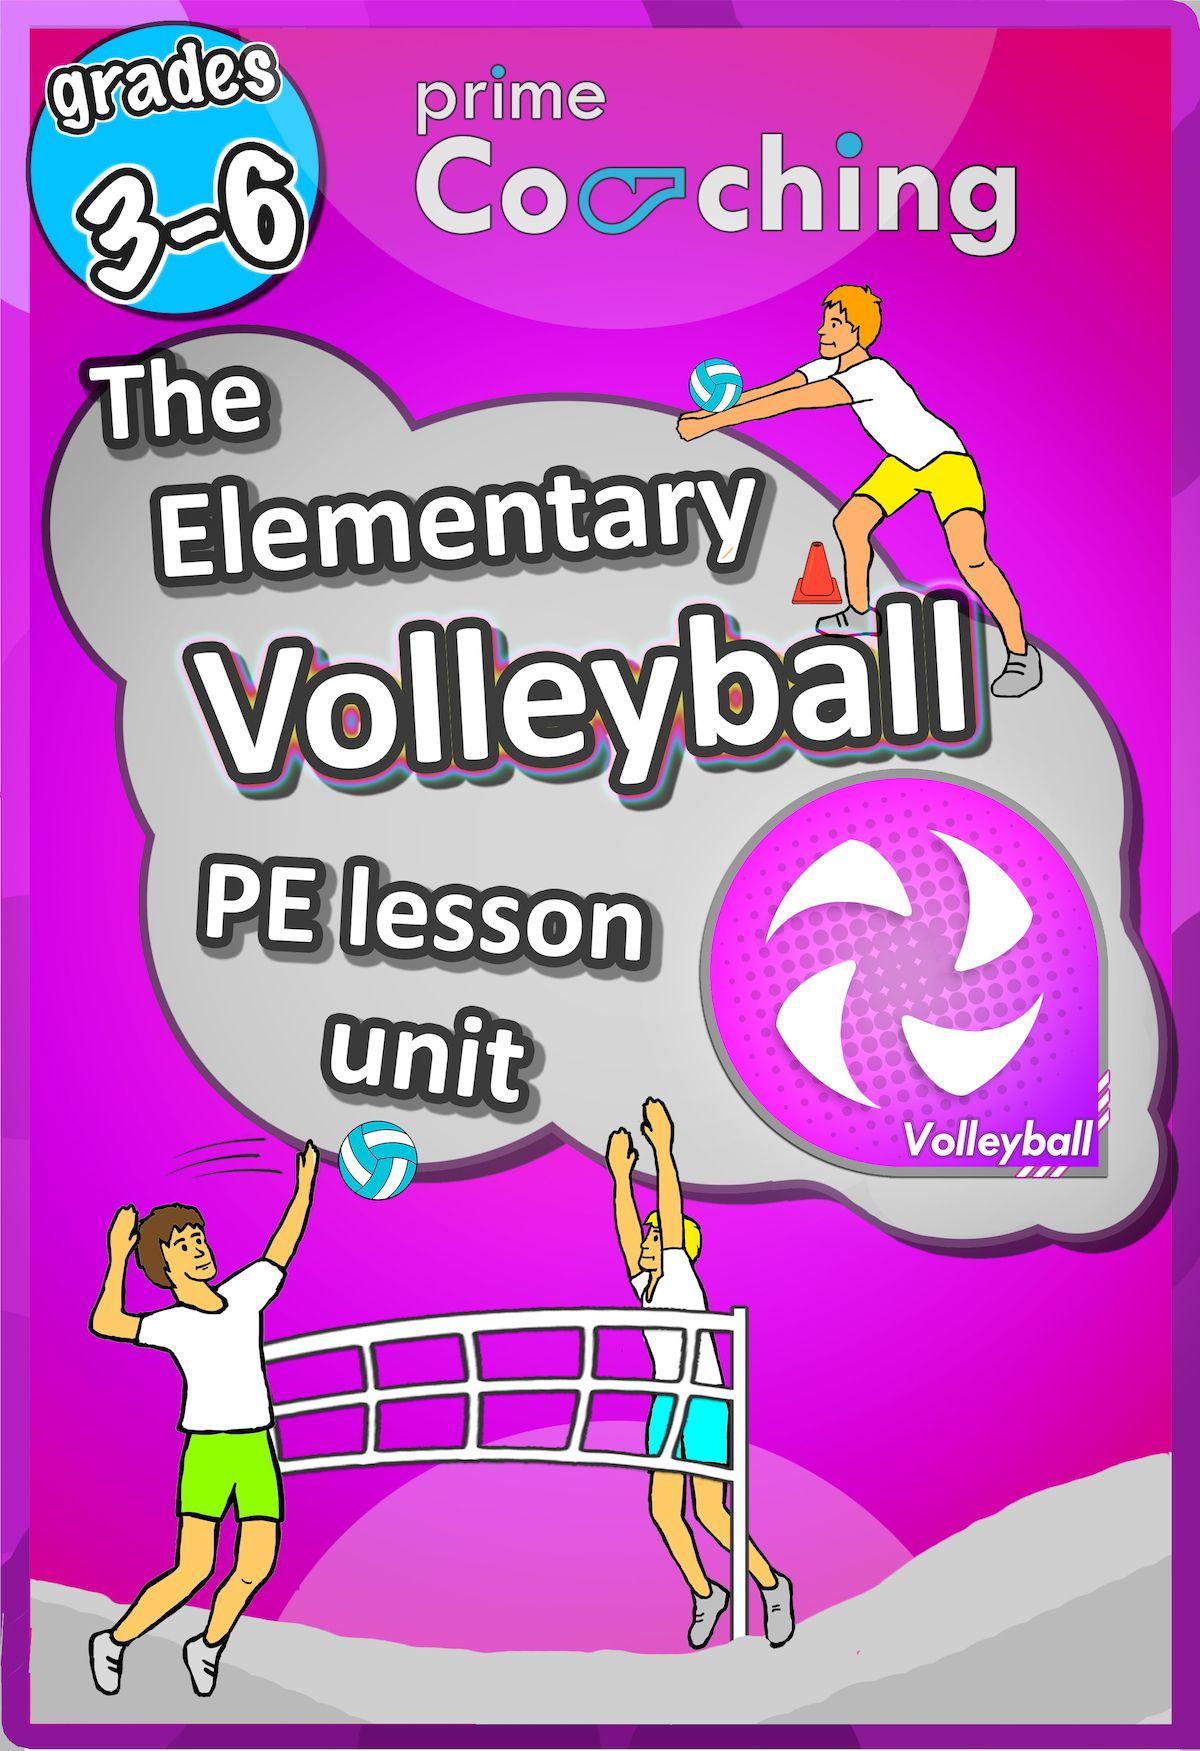 Volleyball Unit Pe Sport Unit With Lesson Plans Drills Games Grades 3 6 Elementary Physical Education Pe Lessons Physical Education Lessons